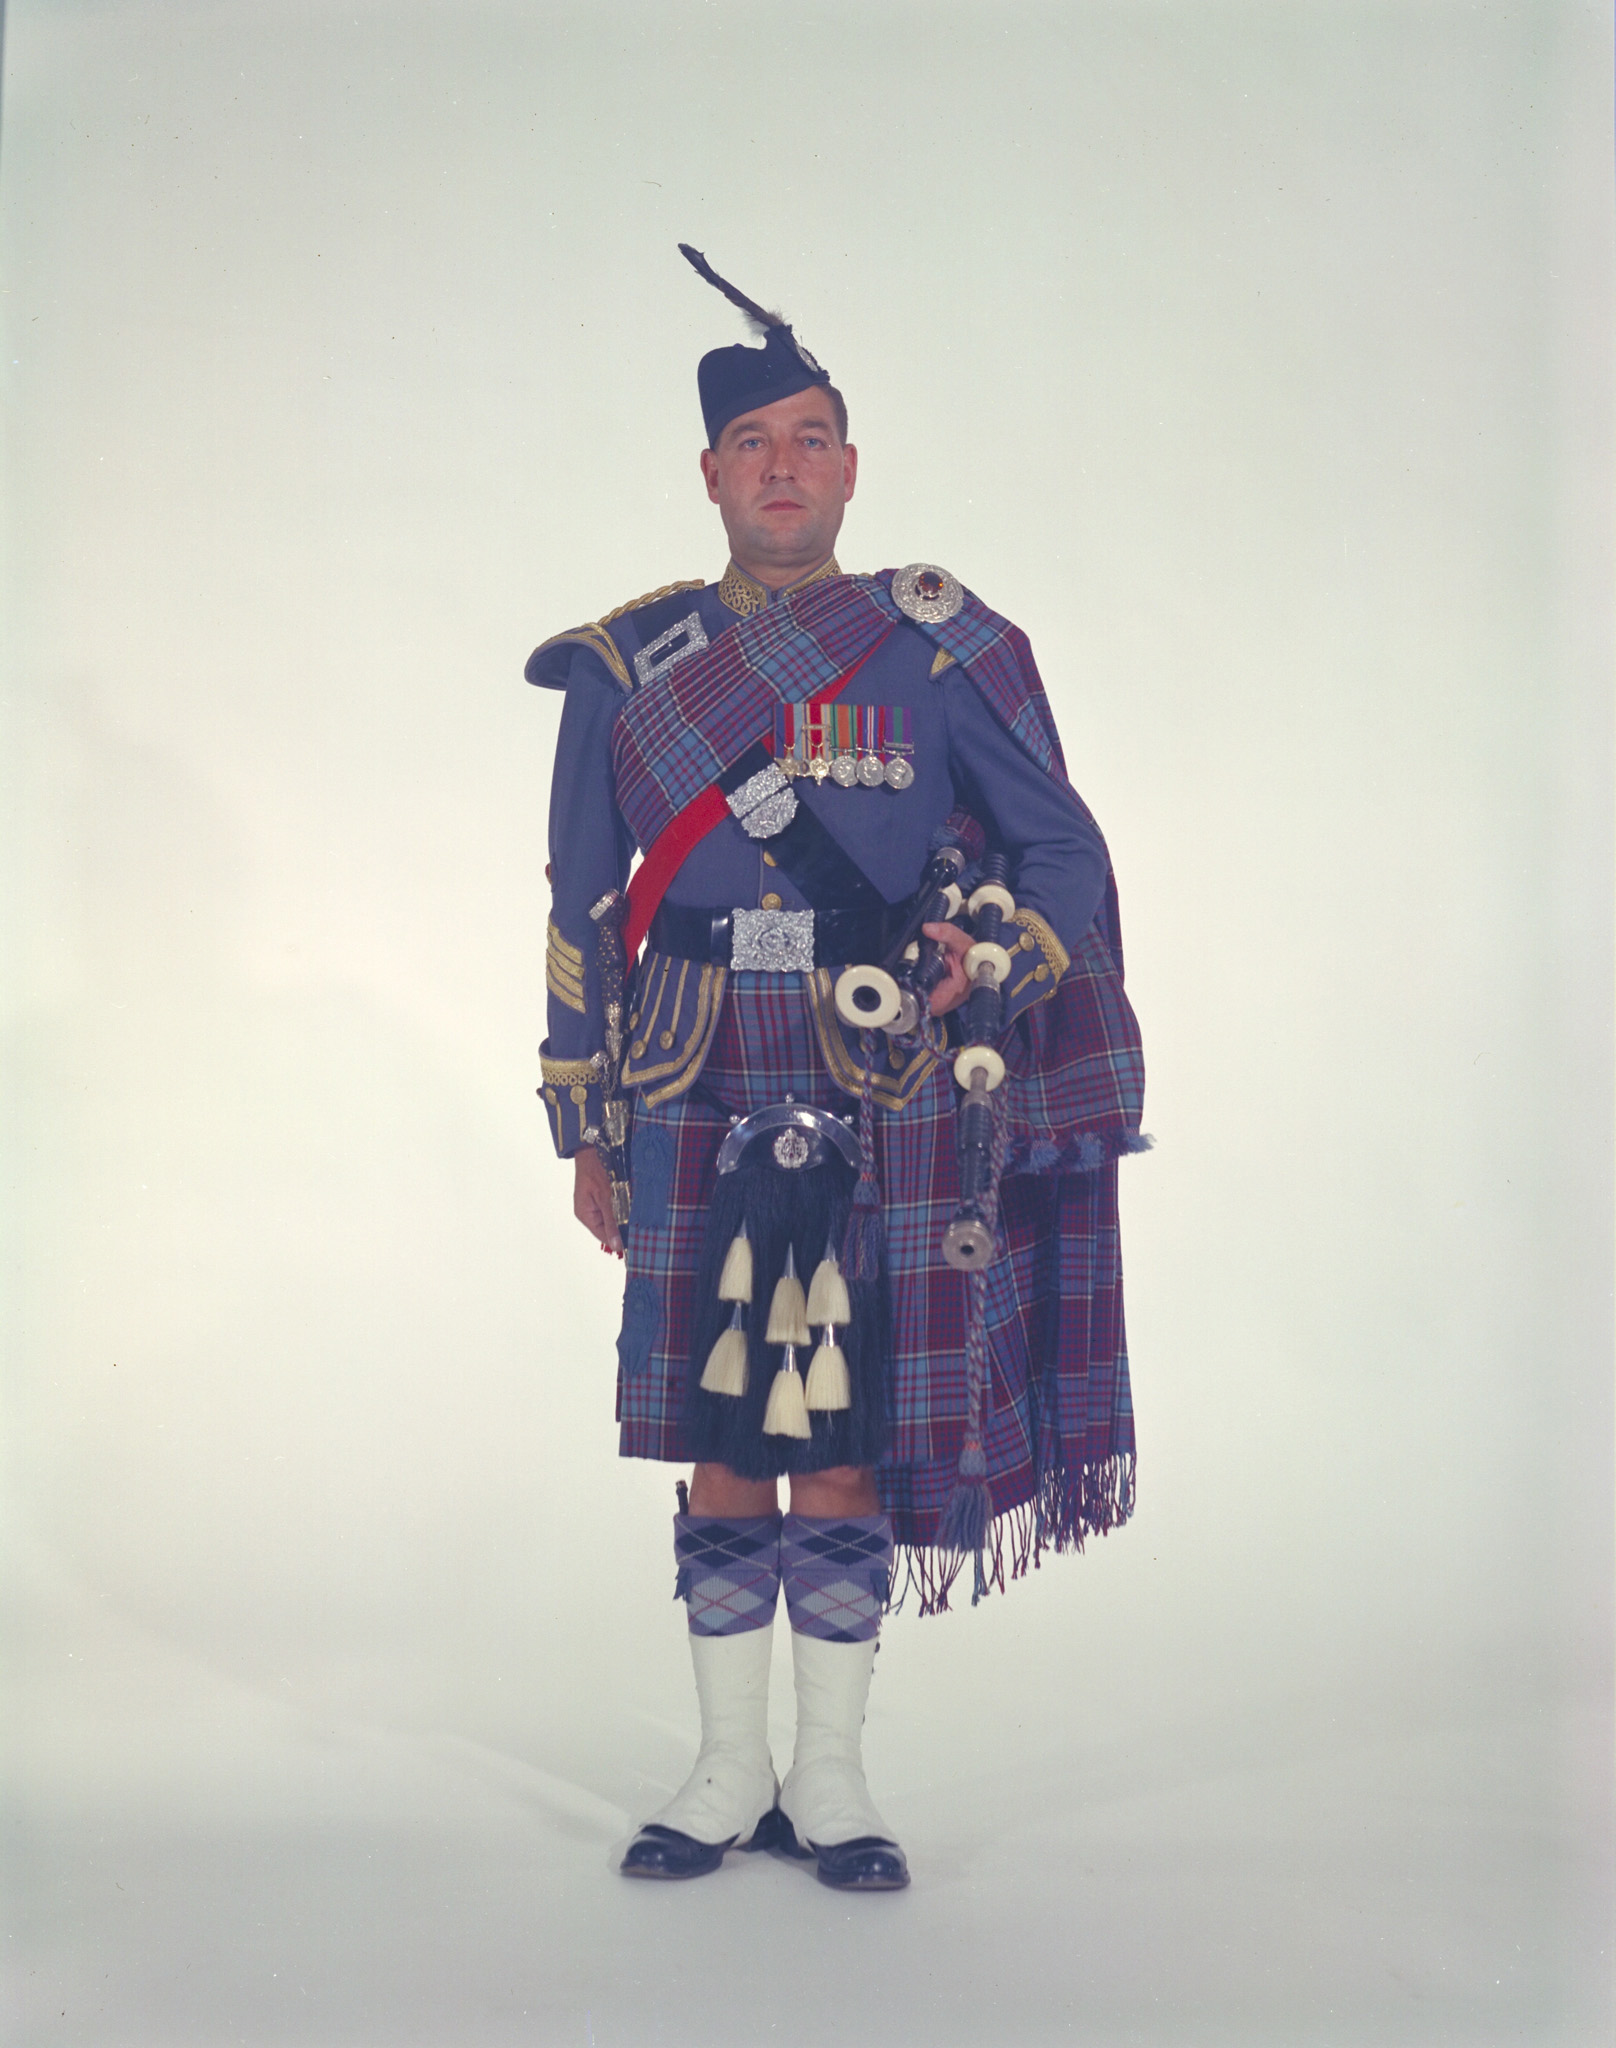 An RCAF piper in full regalia with pipes, wearing the RCAF tartan, in an undated photo. PHOTO: DND